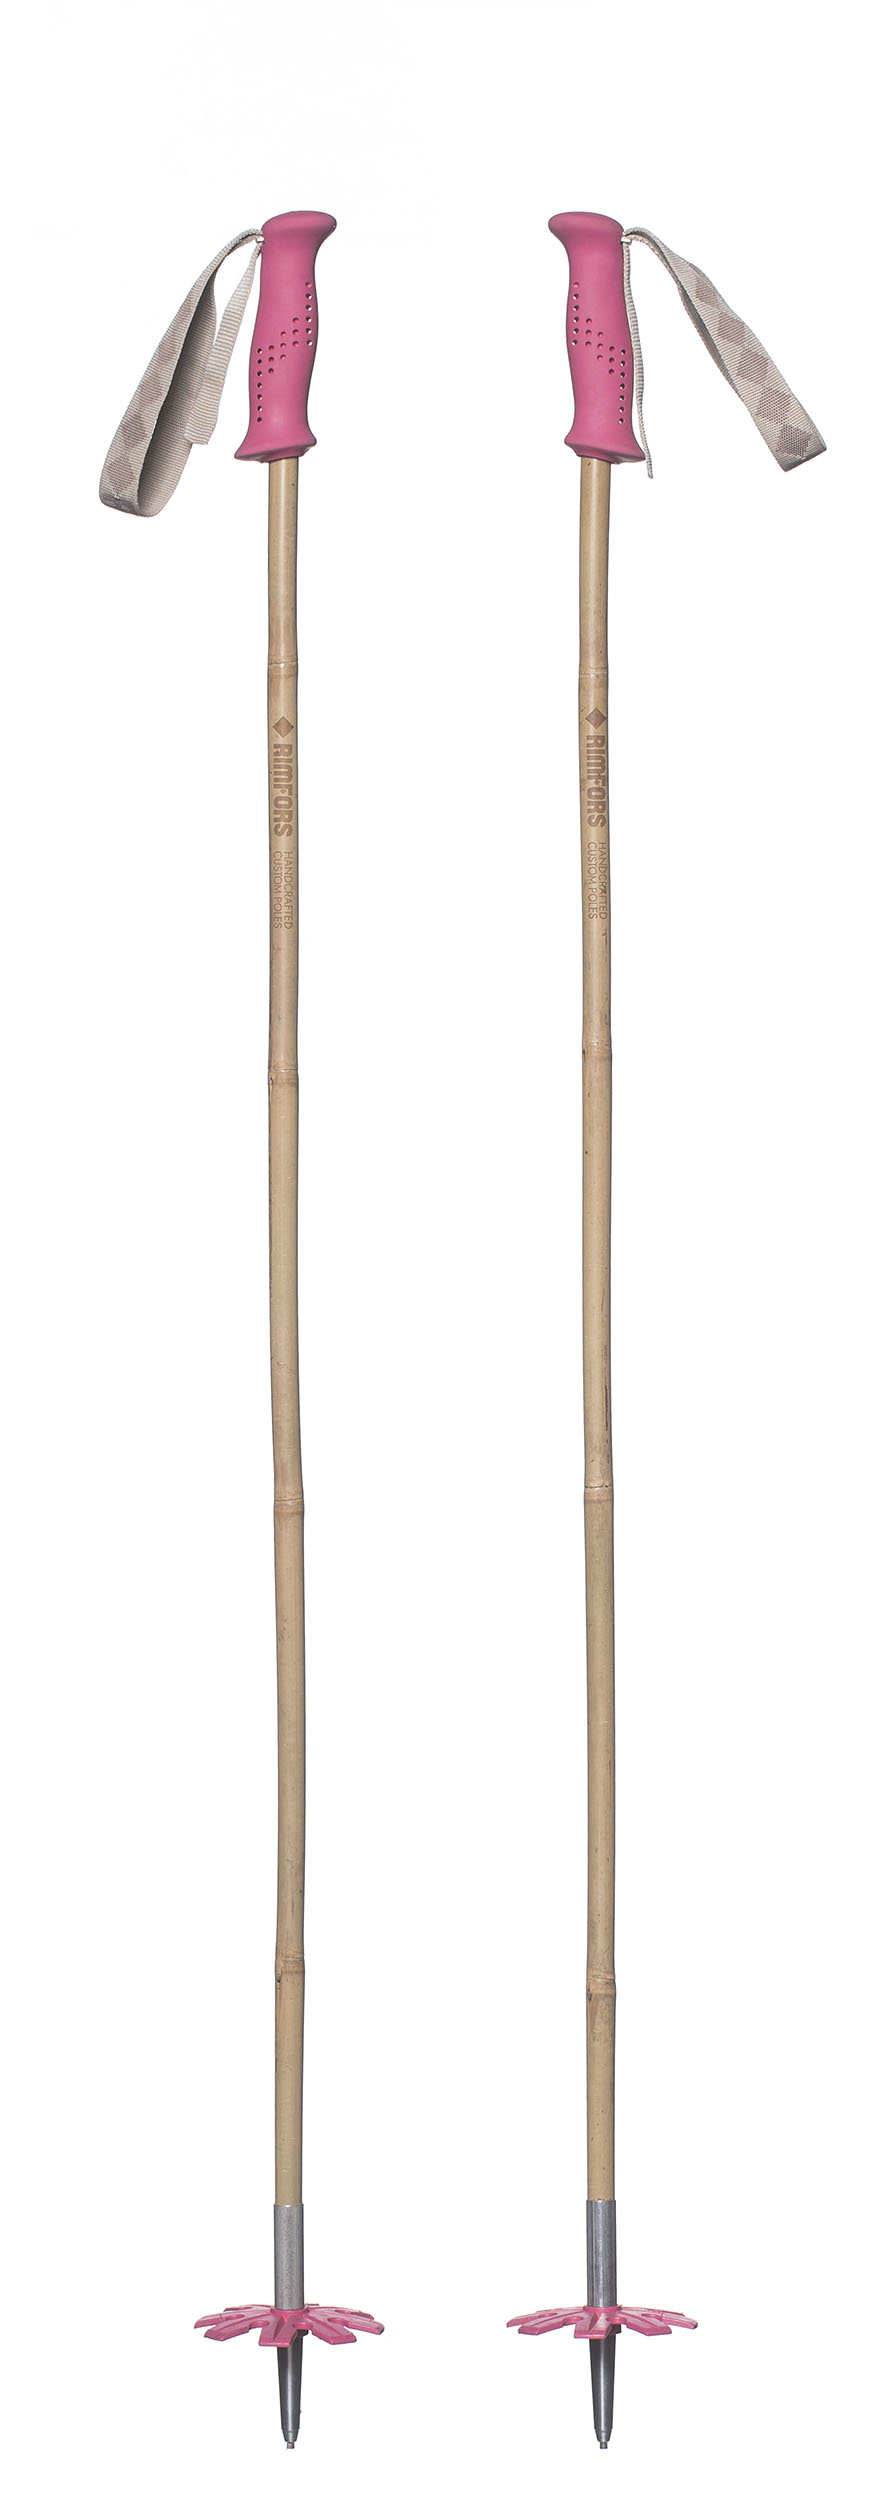 Bamboo ski poles with pink grips and baskets.